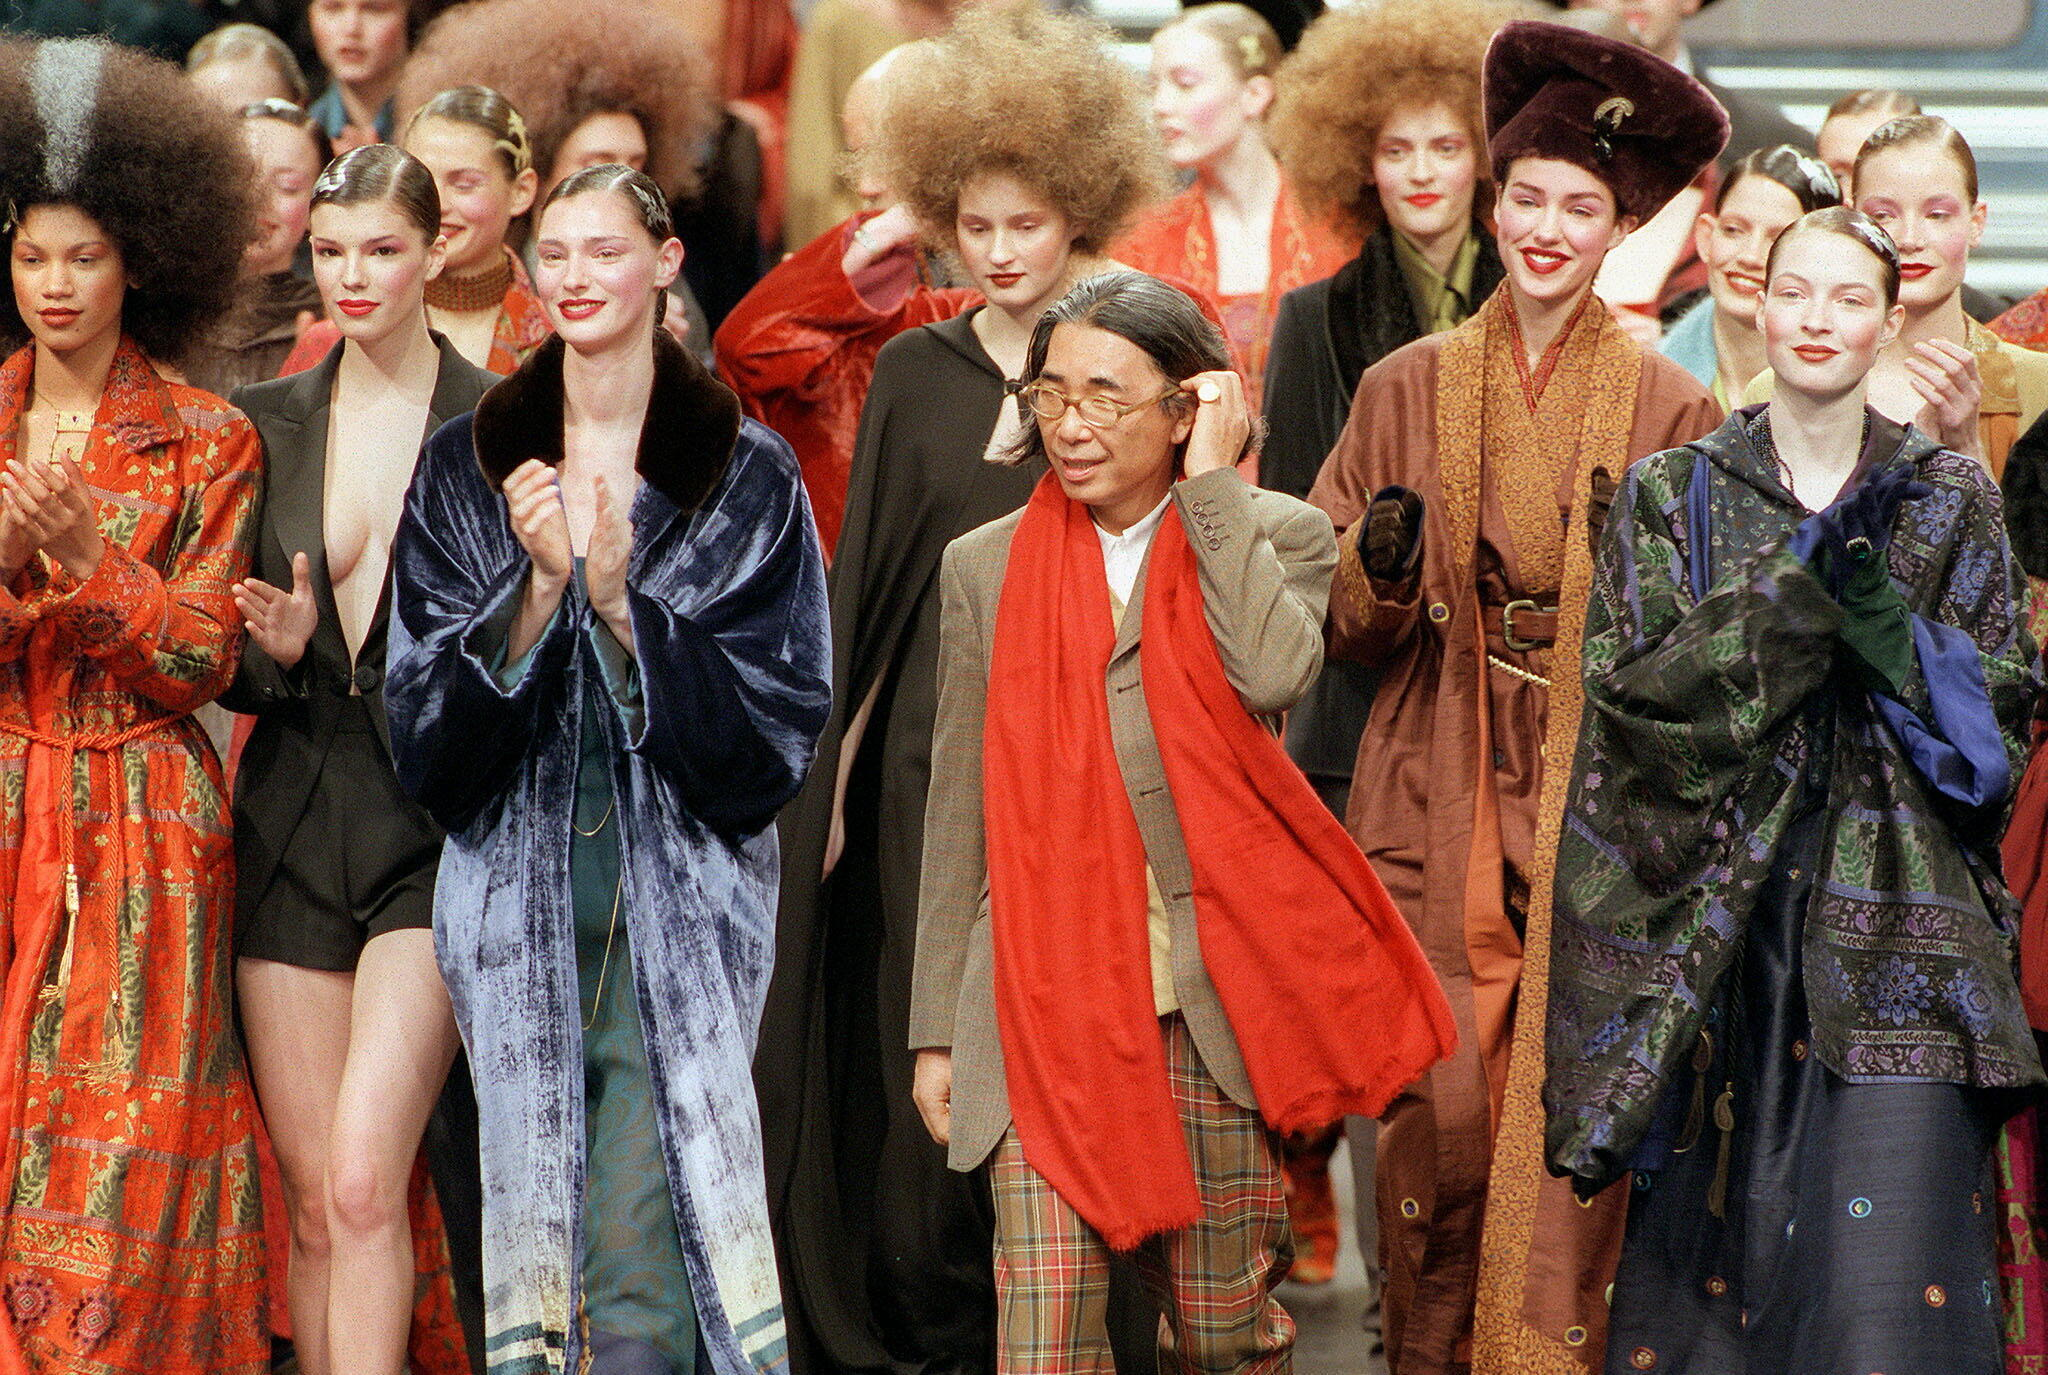 (FILES) In this file photo taken on March 13, 1998 Japanese fashion designer Kenzo (C) salutes the audience at the end of his's ready-to-wear Fall/Winter 1998/99 collection presentation in Paris. The founder of the Kenzo fashion house, Kenzo Takada, has died from from the novel coronavirus, Covid-19, his spokesperson announced in Paris on October 4, 2020.